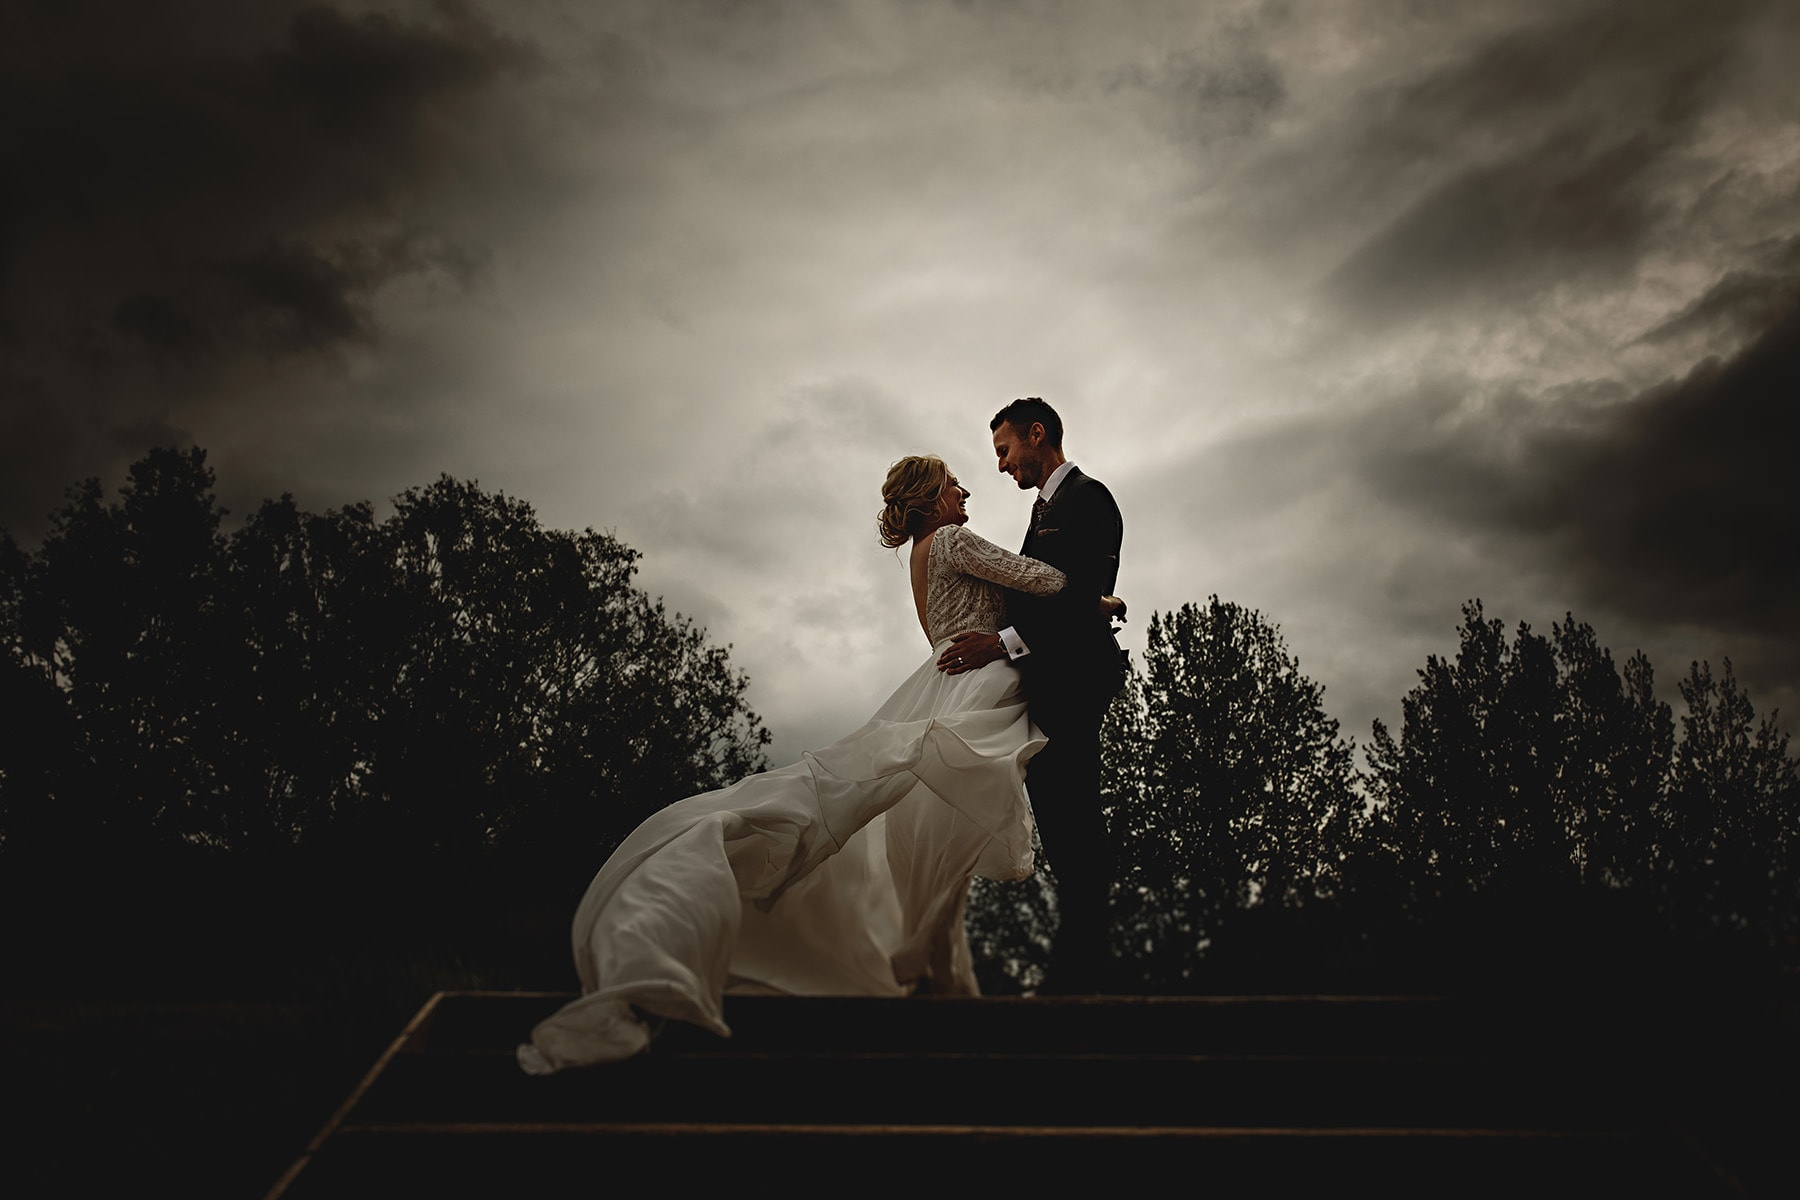 the bride and groom stood in dramatic light at The West Mill in Derbyshire on their wedding day